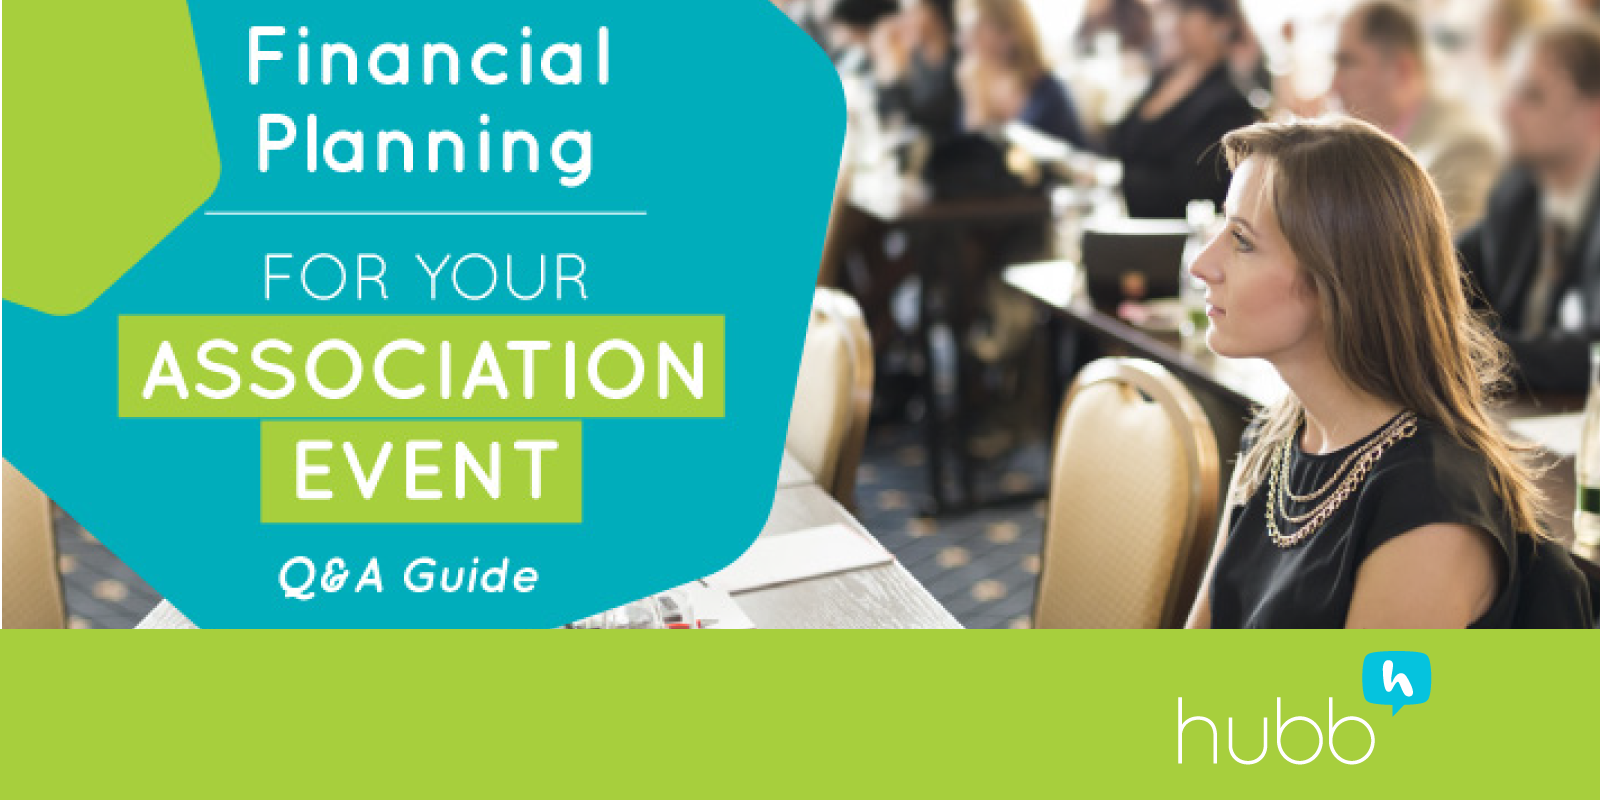 Financial Planning for Your Association Event | Q&A Guide